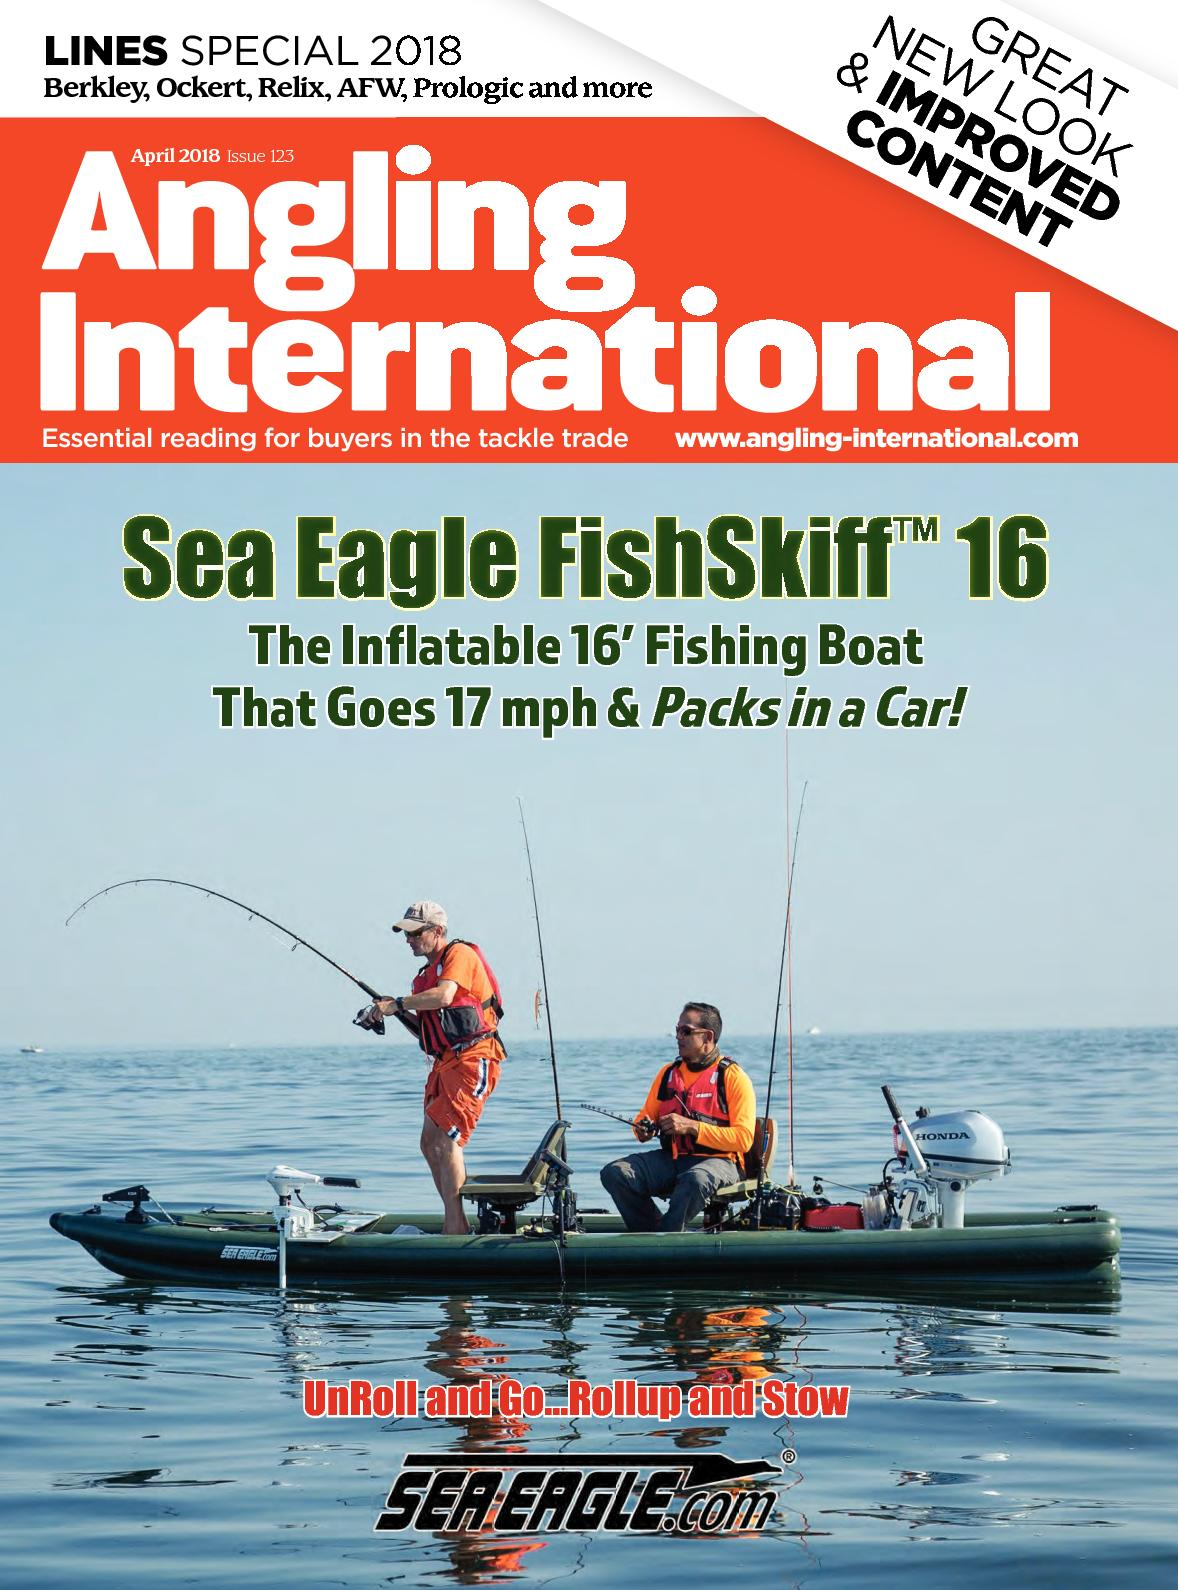 2eadd571f92 Calaméo - Angling International - April 2018 - issue 123